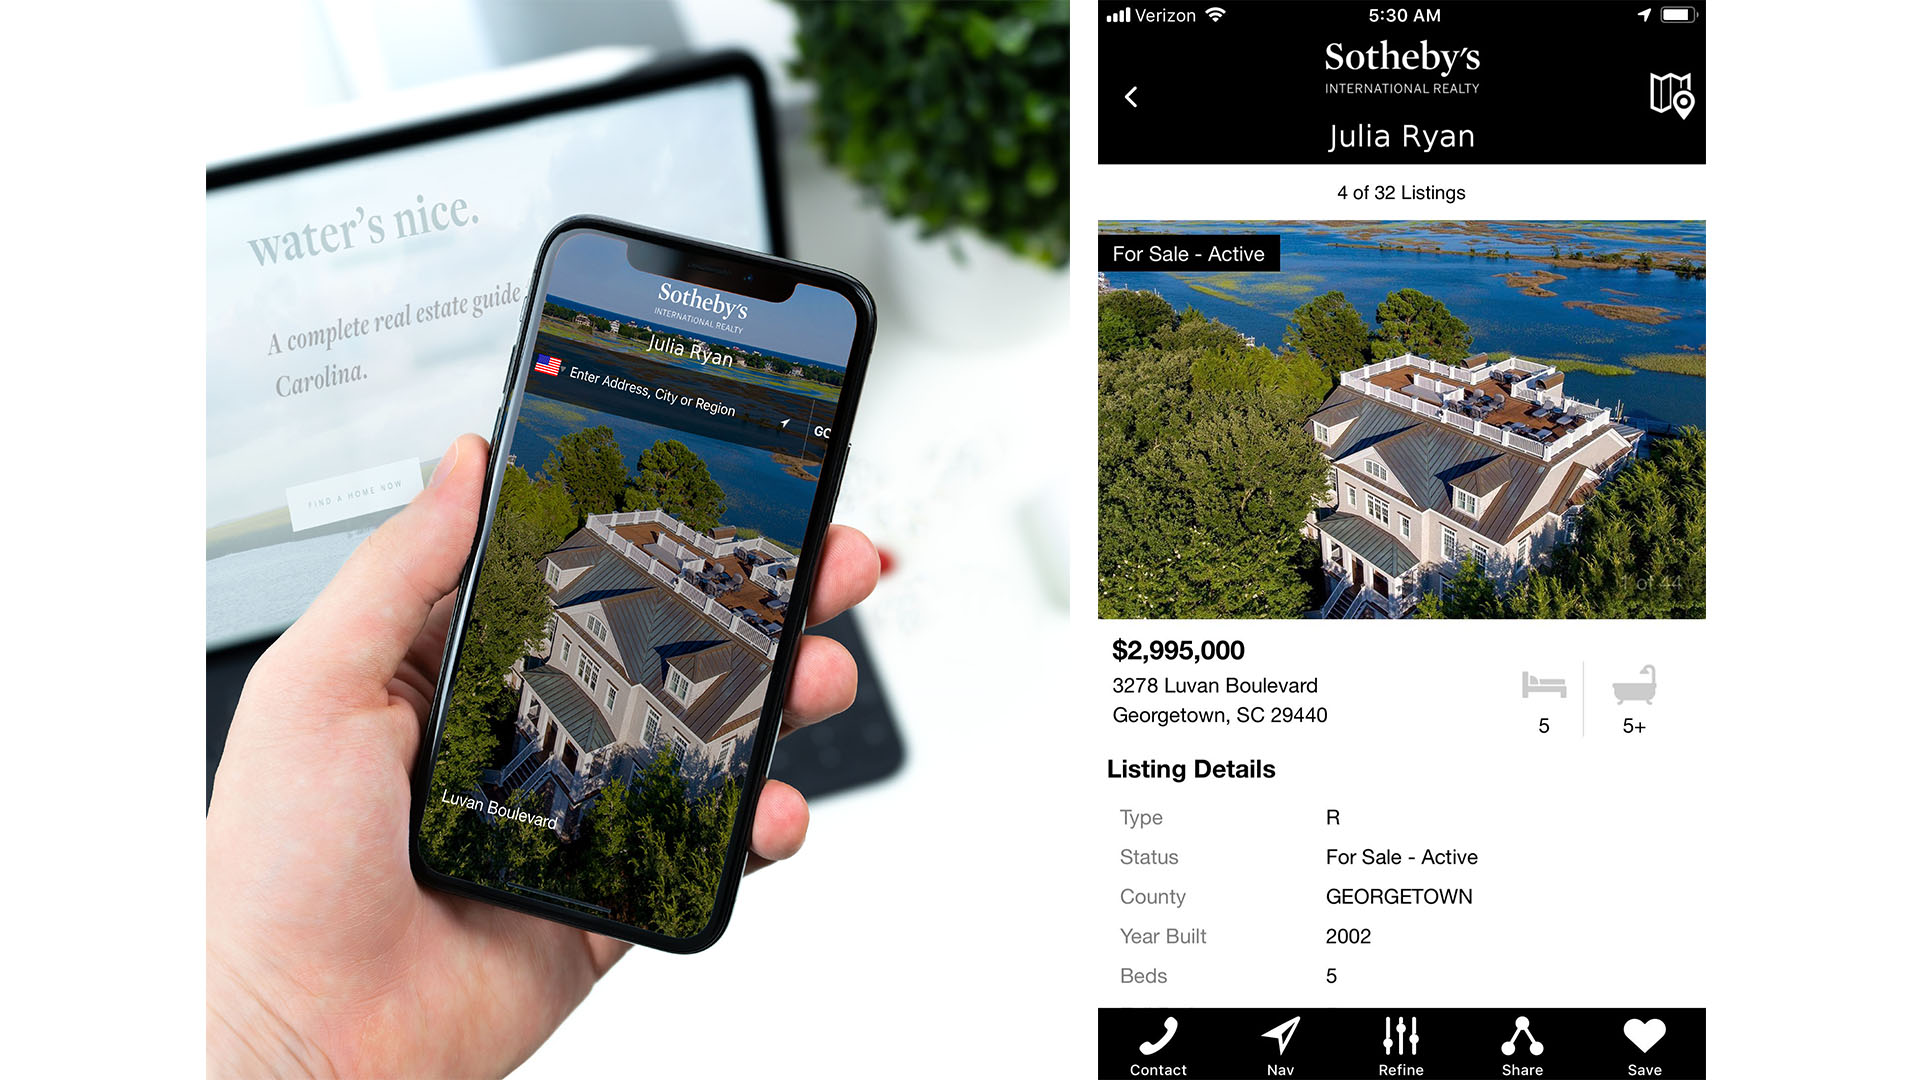 SIR Mobile - The Sotheby's International Realty® brand has partnered with Smarter Agent to co-develop the FREE Sotheby's International Realty mobile application, SIR Mobile. SIR Mobile is leading the charge of the growing mobile marketplace and helping our network own the mobile relationship with your clients and potential clients. SIR Mobile is unique in that it works on any phone including iPhone and Android, as well as the iPad, enabling the Sotheby's International Realty network to reach all homebuyers that use mobile devices.To enhance the search for a home, the Sotheby's International Realty iPad app not only offers luxury homes for sale, for rent and recent home sale prices, but also provides the ability to hone the property search based on local points of interest and lifestyle (USA search compatibility only). It empowers the consumer to get to know the neighborhood where they're considering buying or renting.